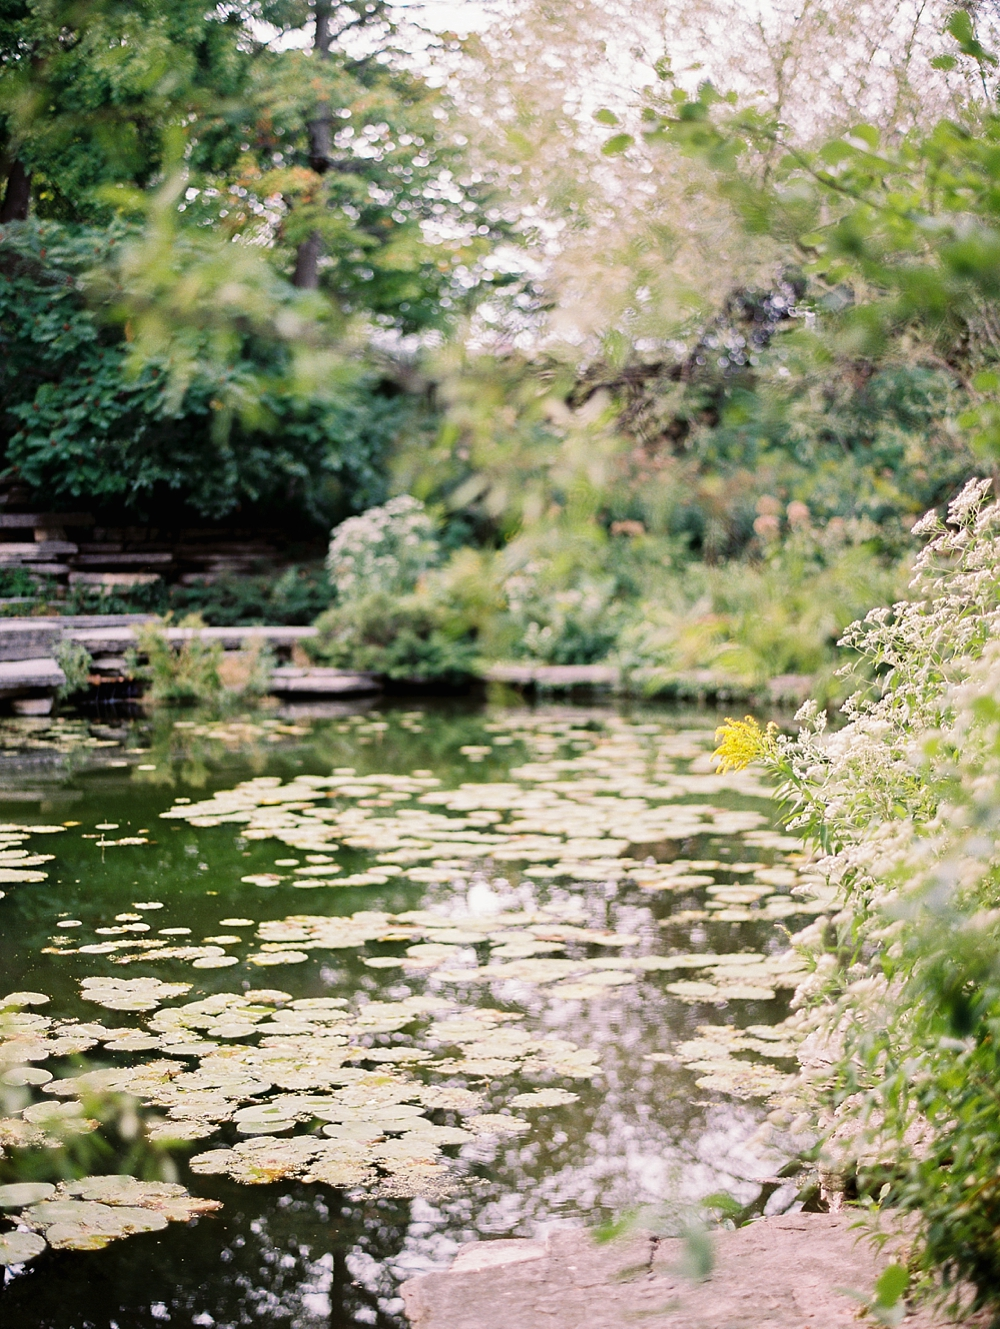 kristin-la-voie-photography-Chicago-wedding-lily-pool-elopement-freehand-hotel-172